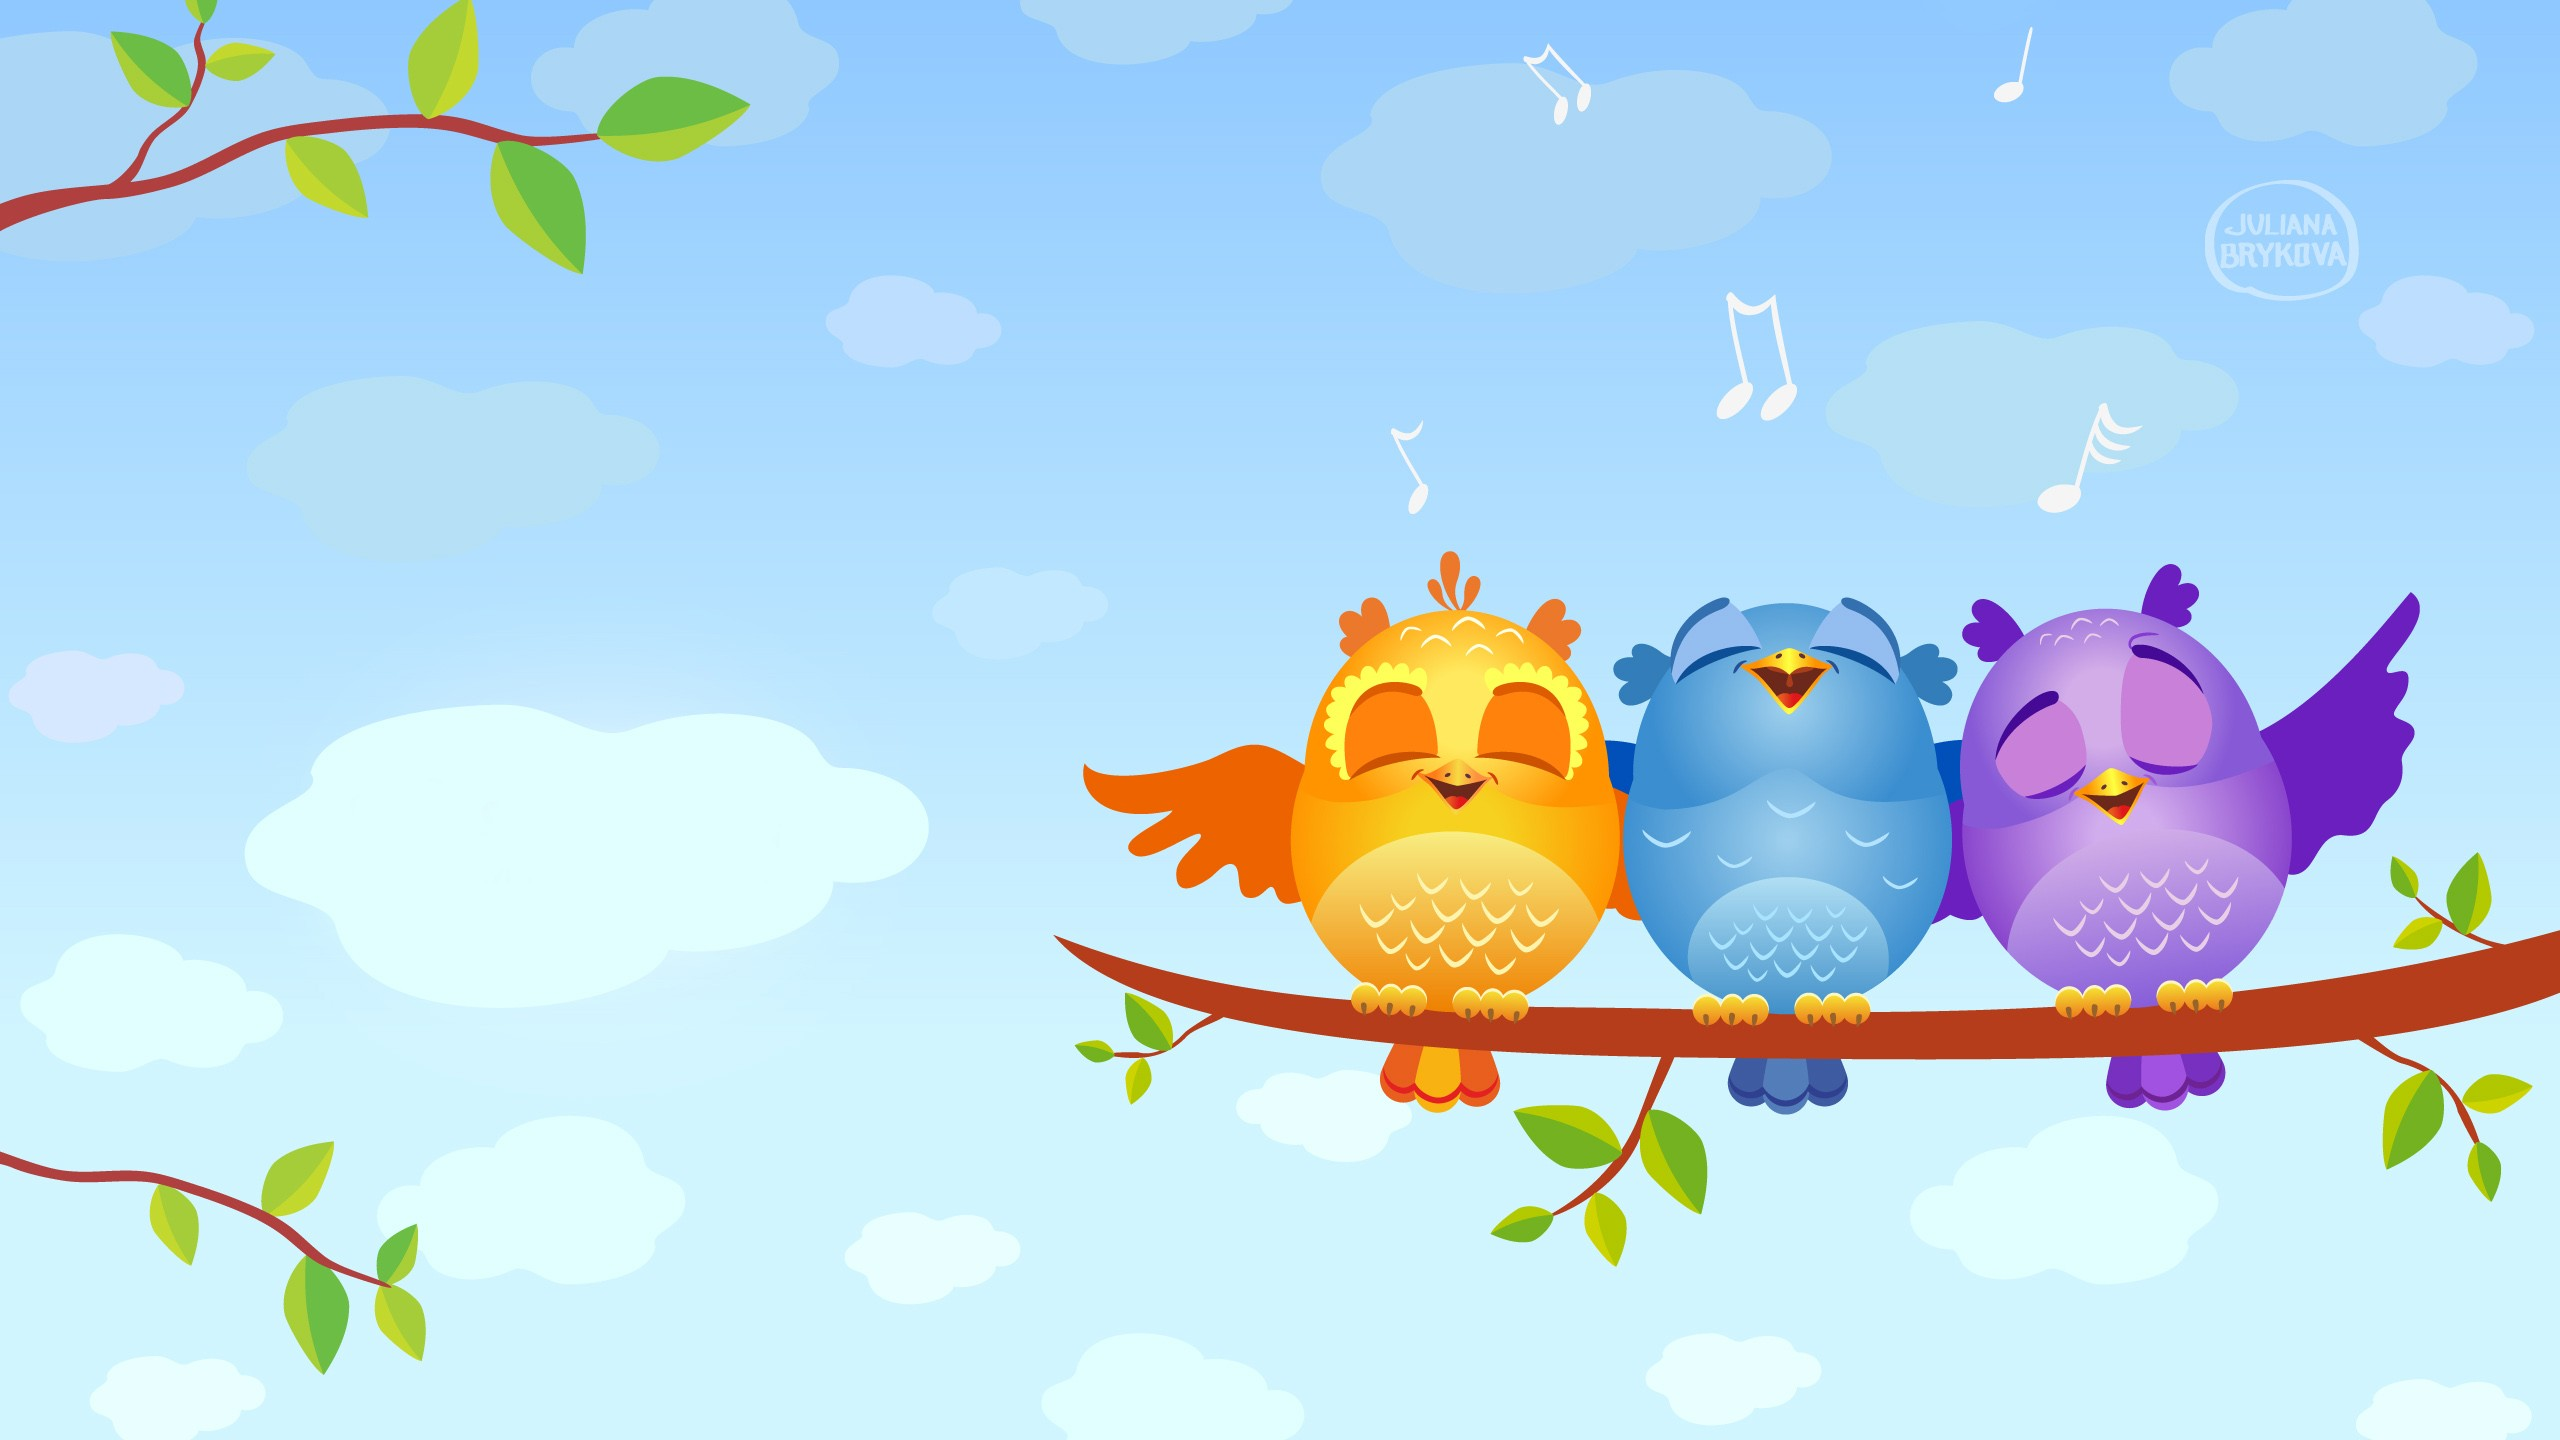 Wallpapers 1600x900 Cars Singing Birds Wallpapers Hd Wallpapers Id 12624